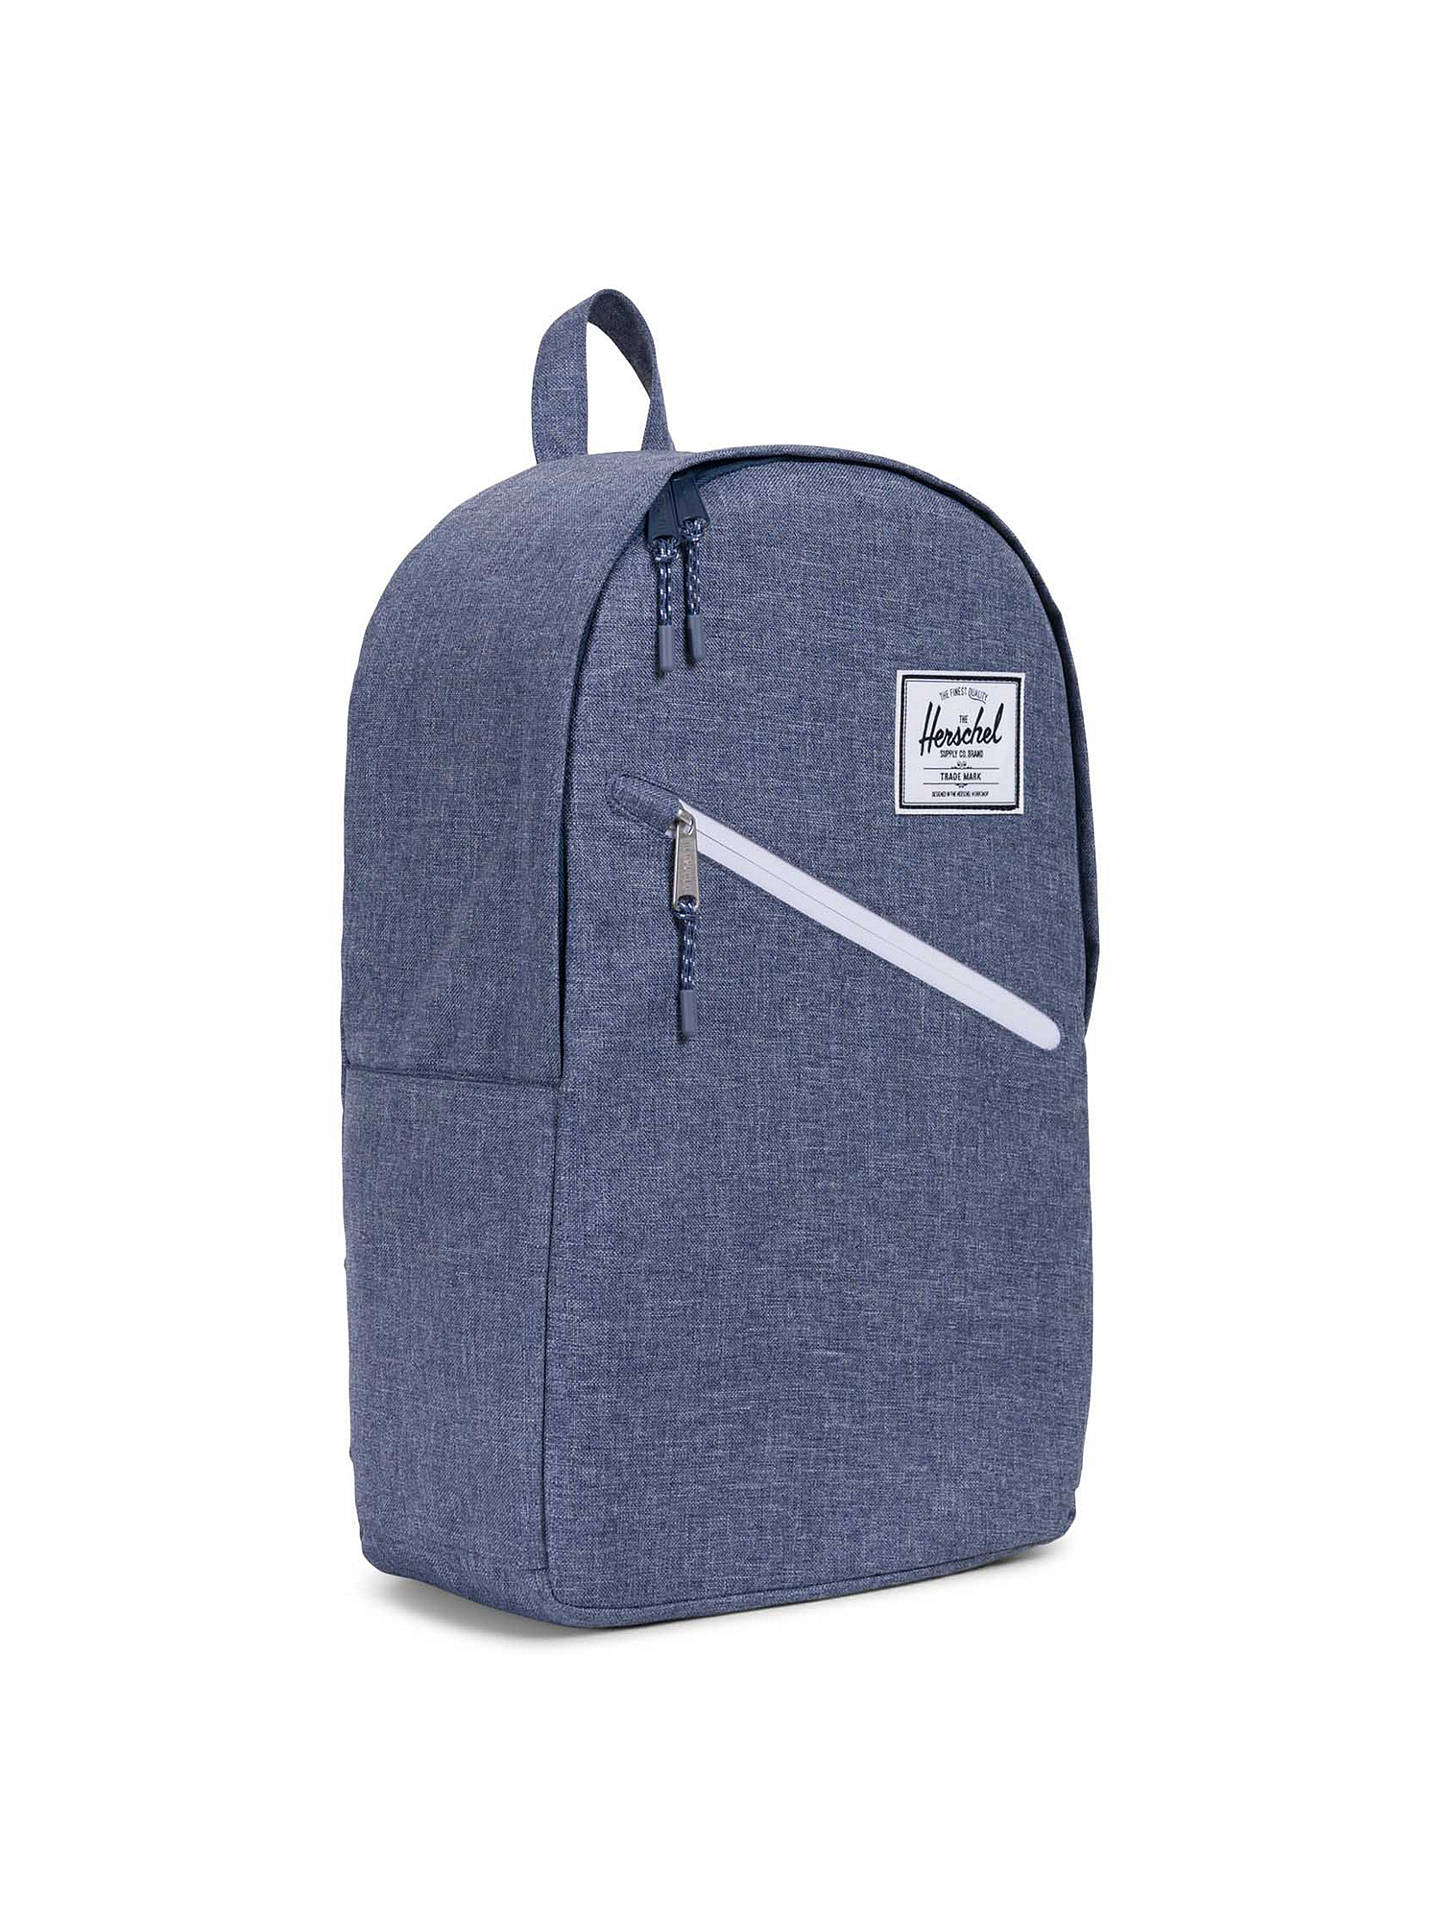 168fe3269c9 ... Buy Herschel Supply Co. Parker Backpack